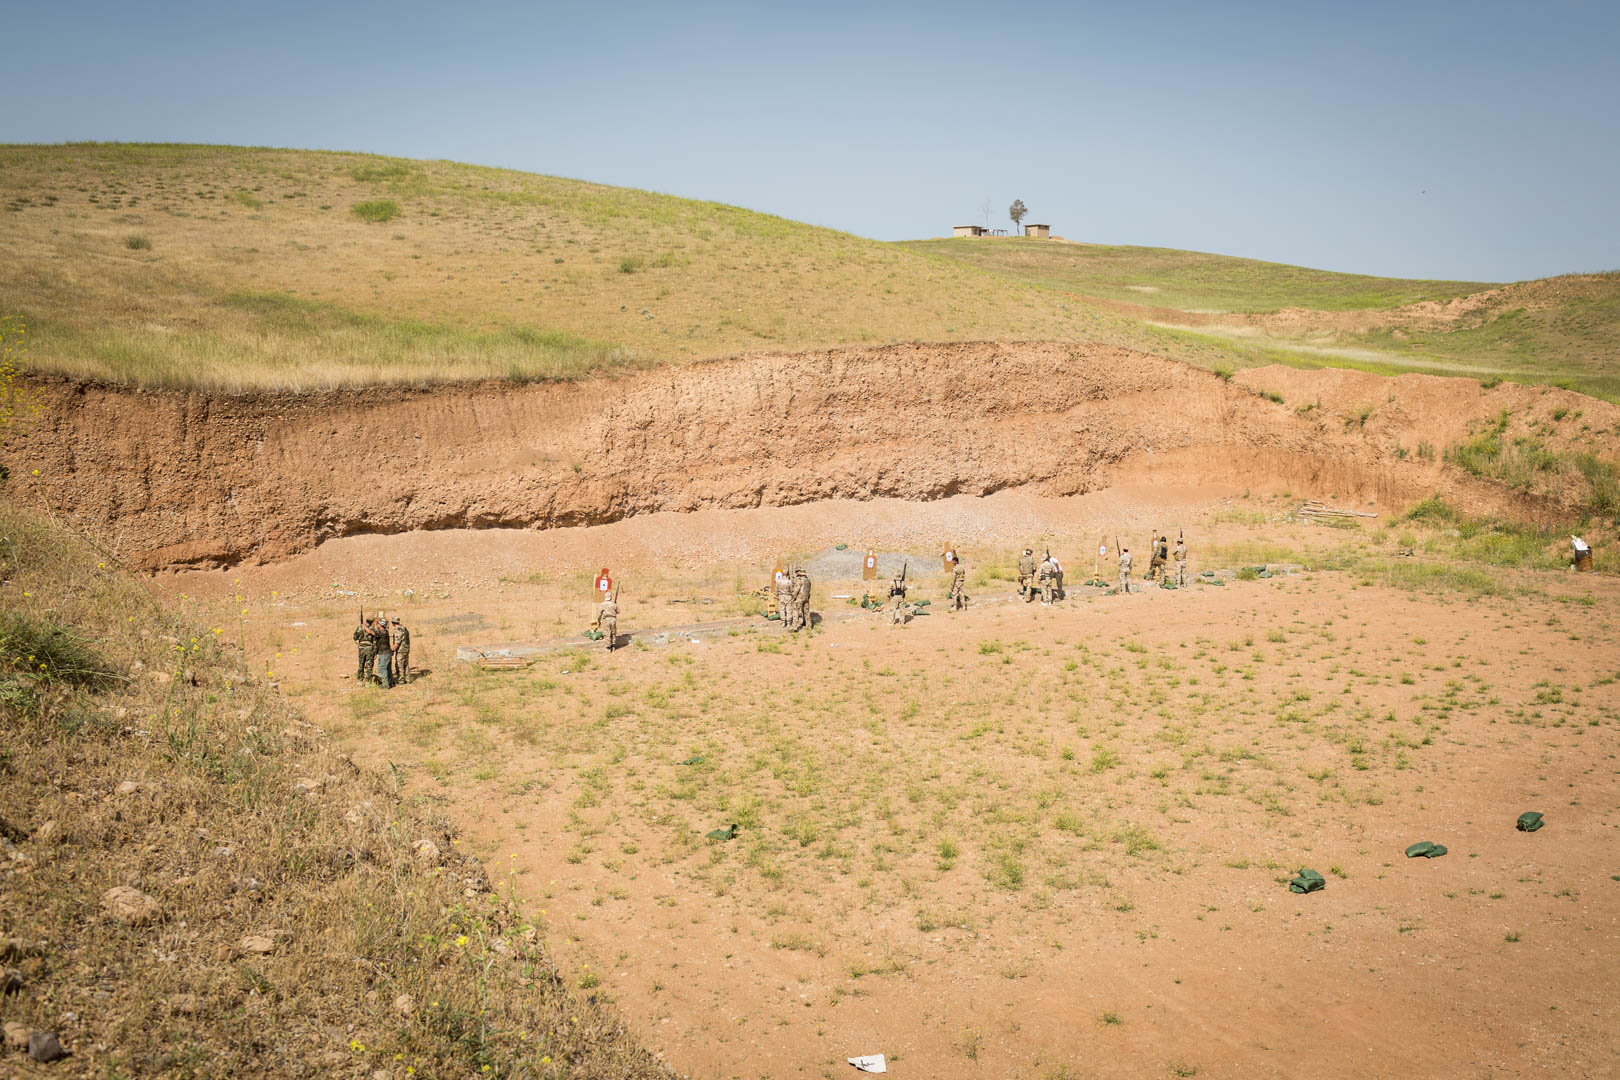 The shooting range is part of the Zerewani military compound just outside of Erbil, the capital of the Kurdistan region in Iraq.